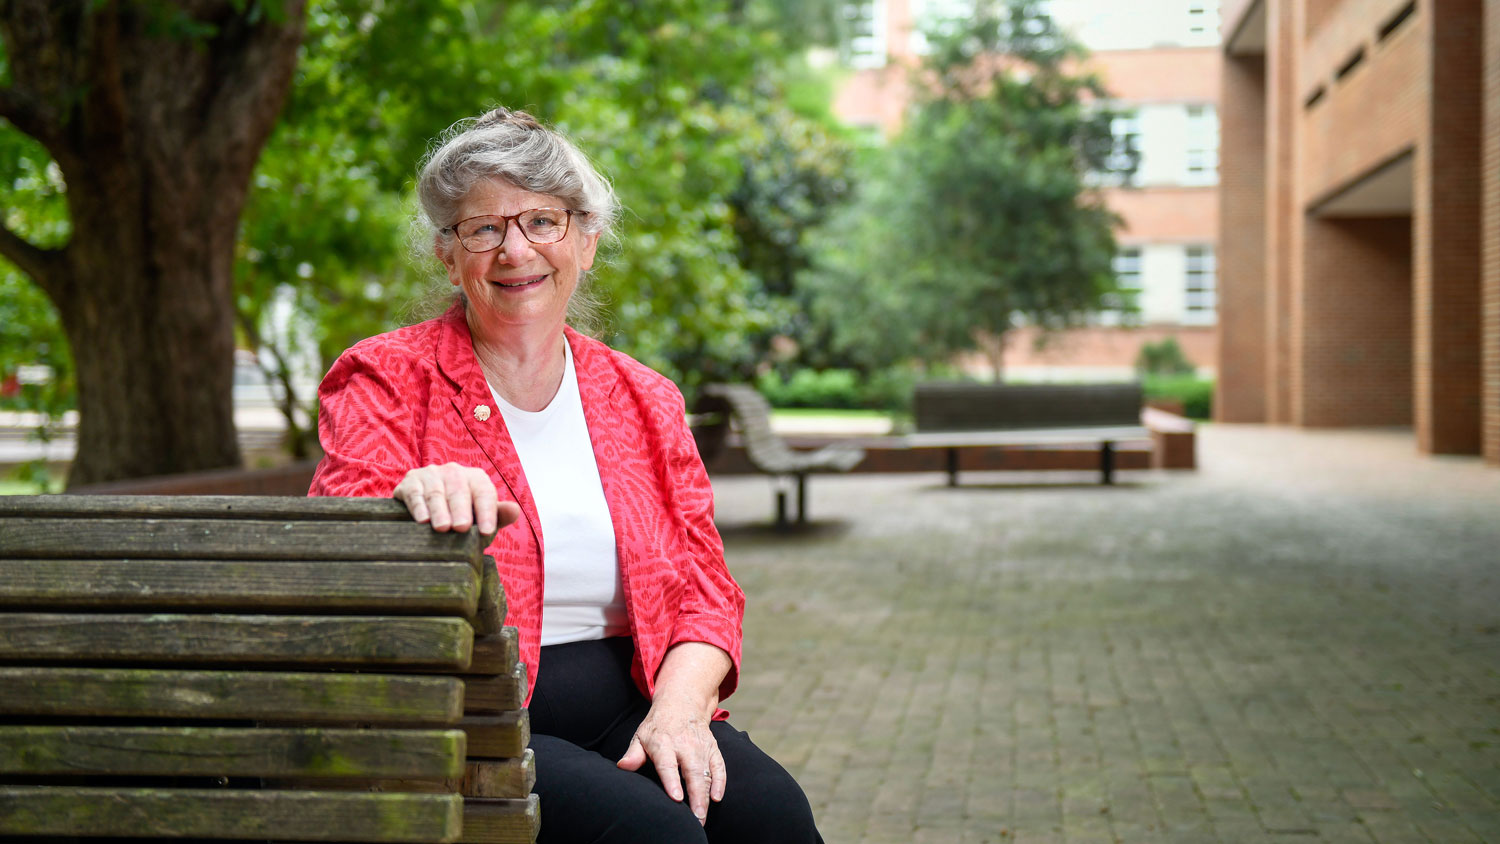 An older woman wearing glasses sitting on a bench